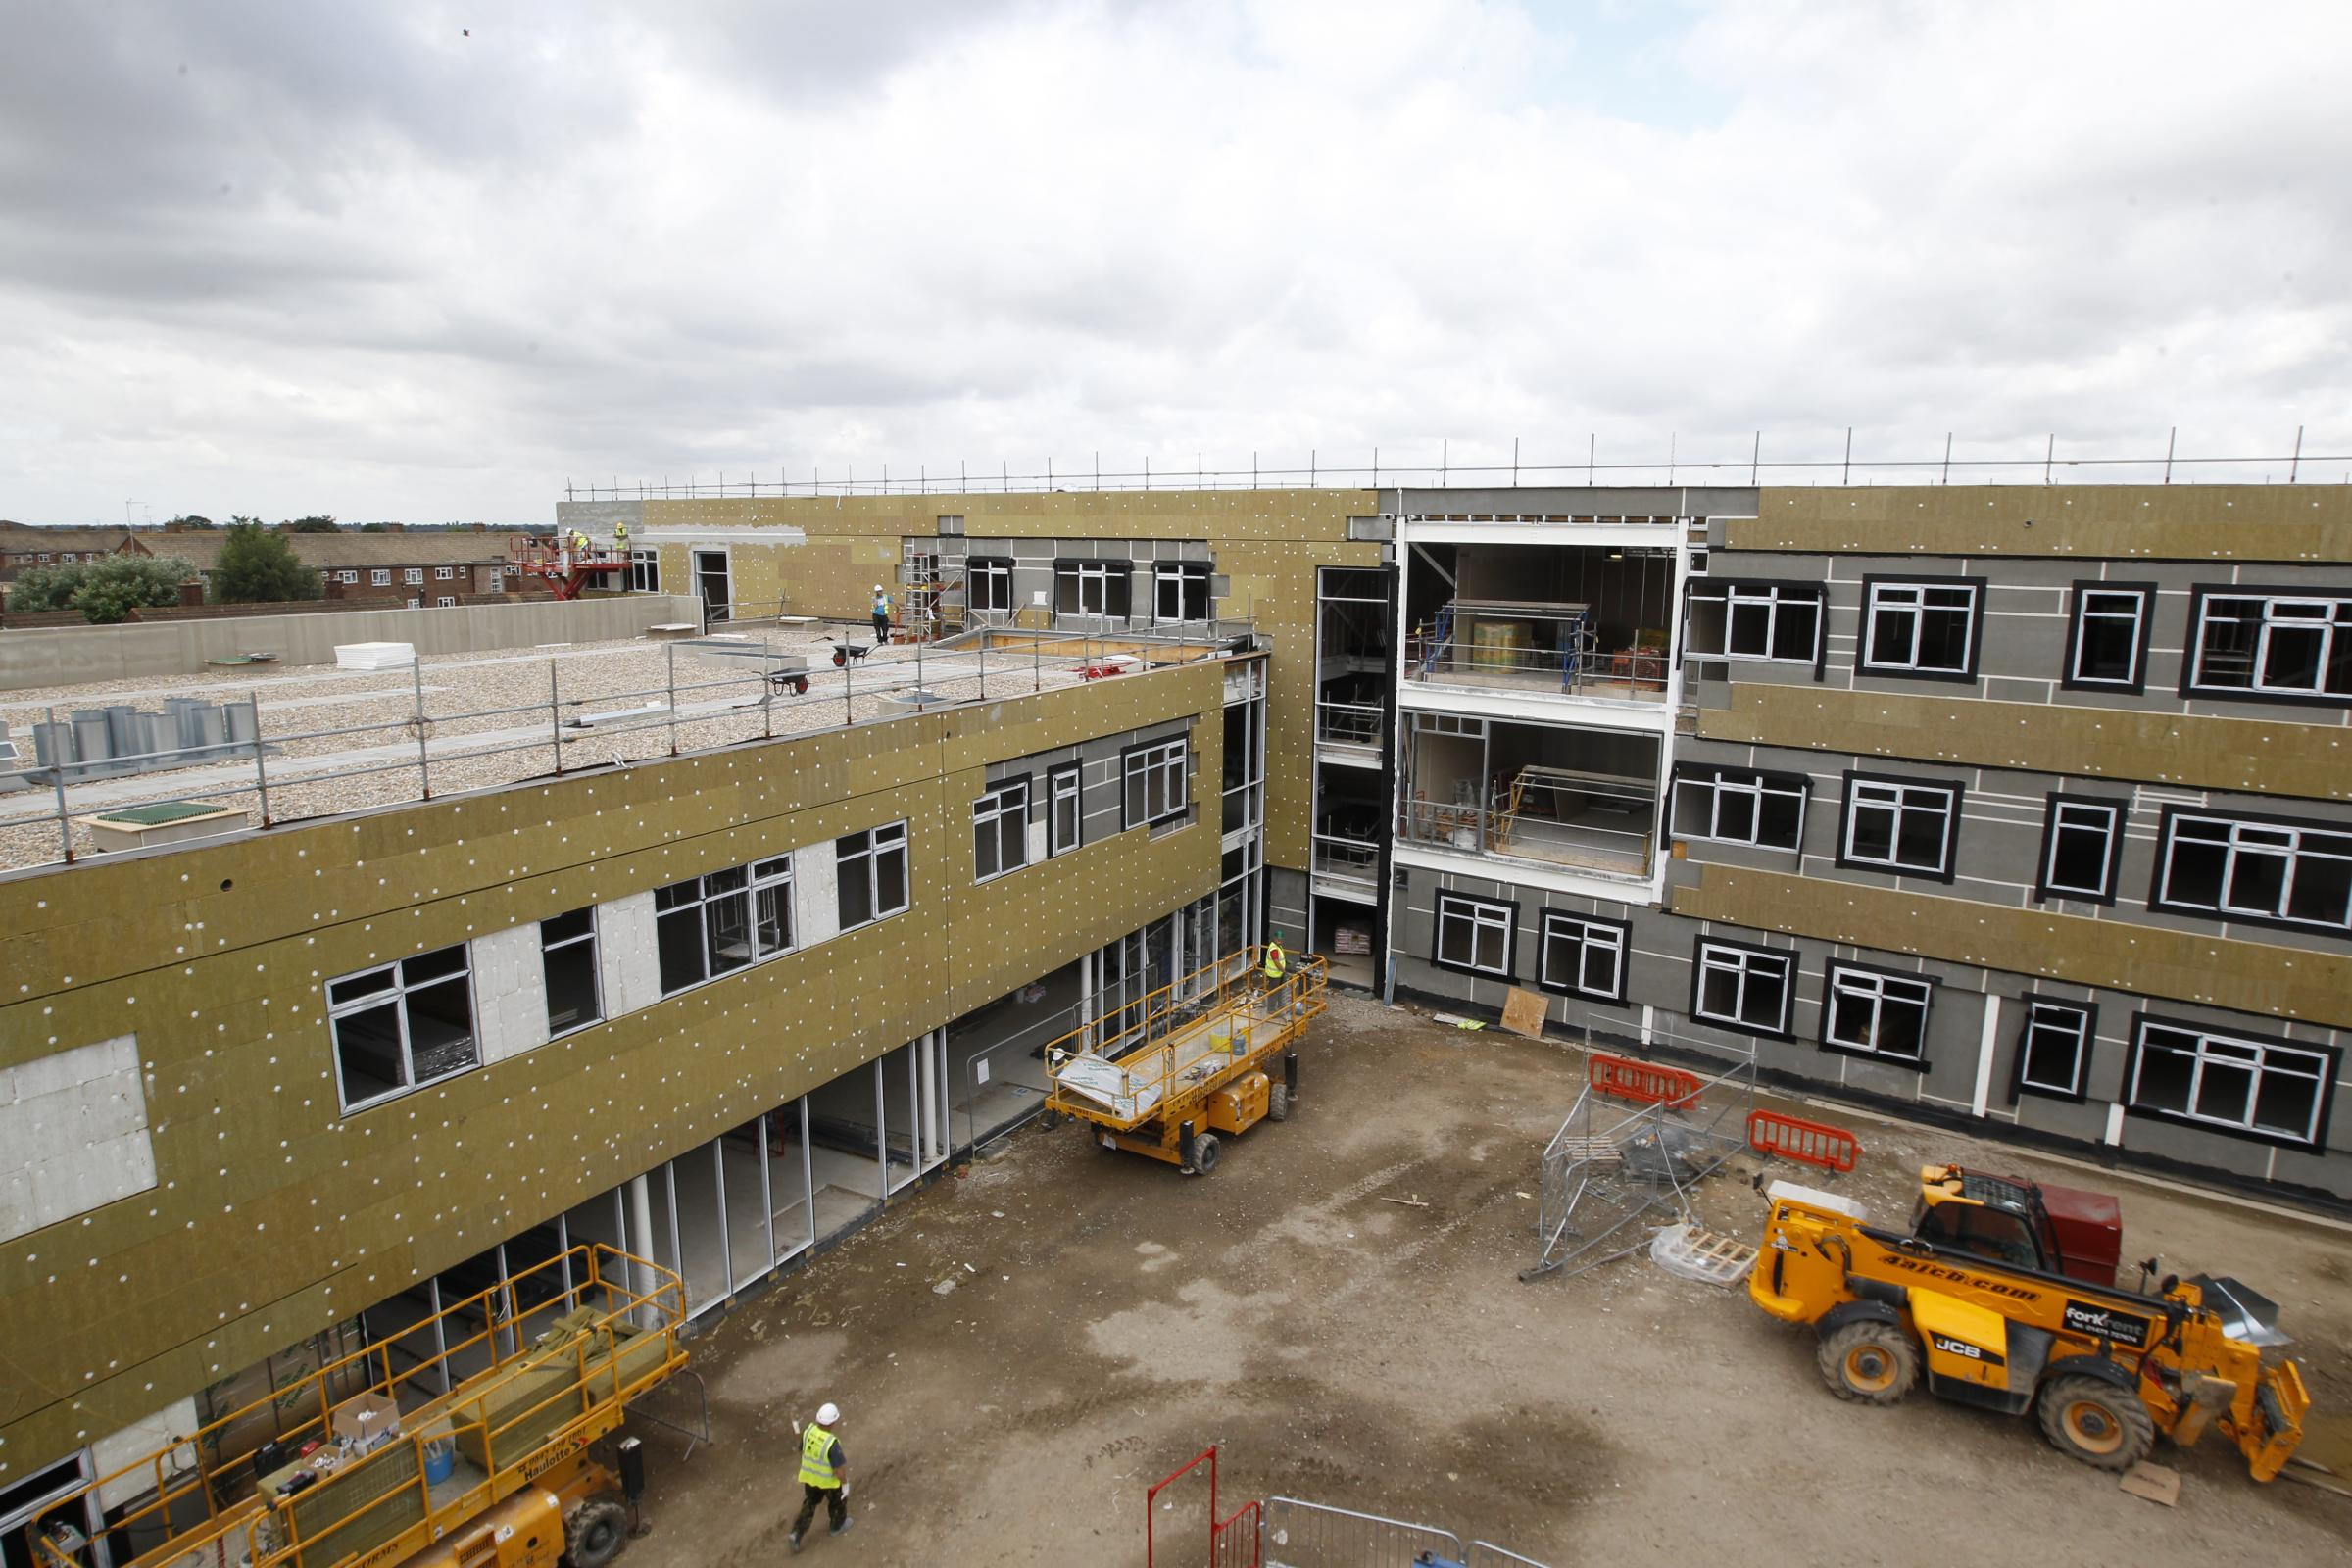 Construction work at the new Colchester Academy building is now complete.